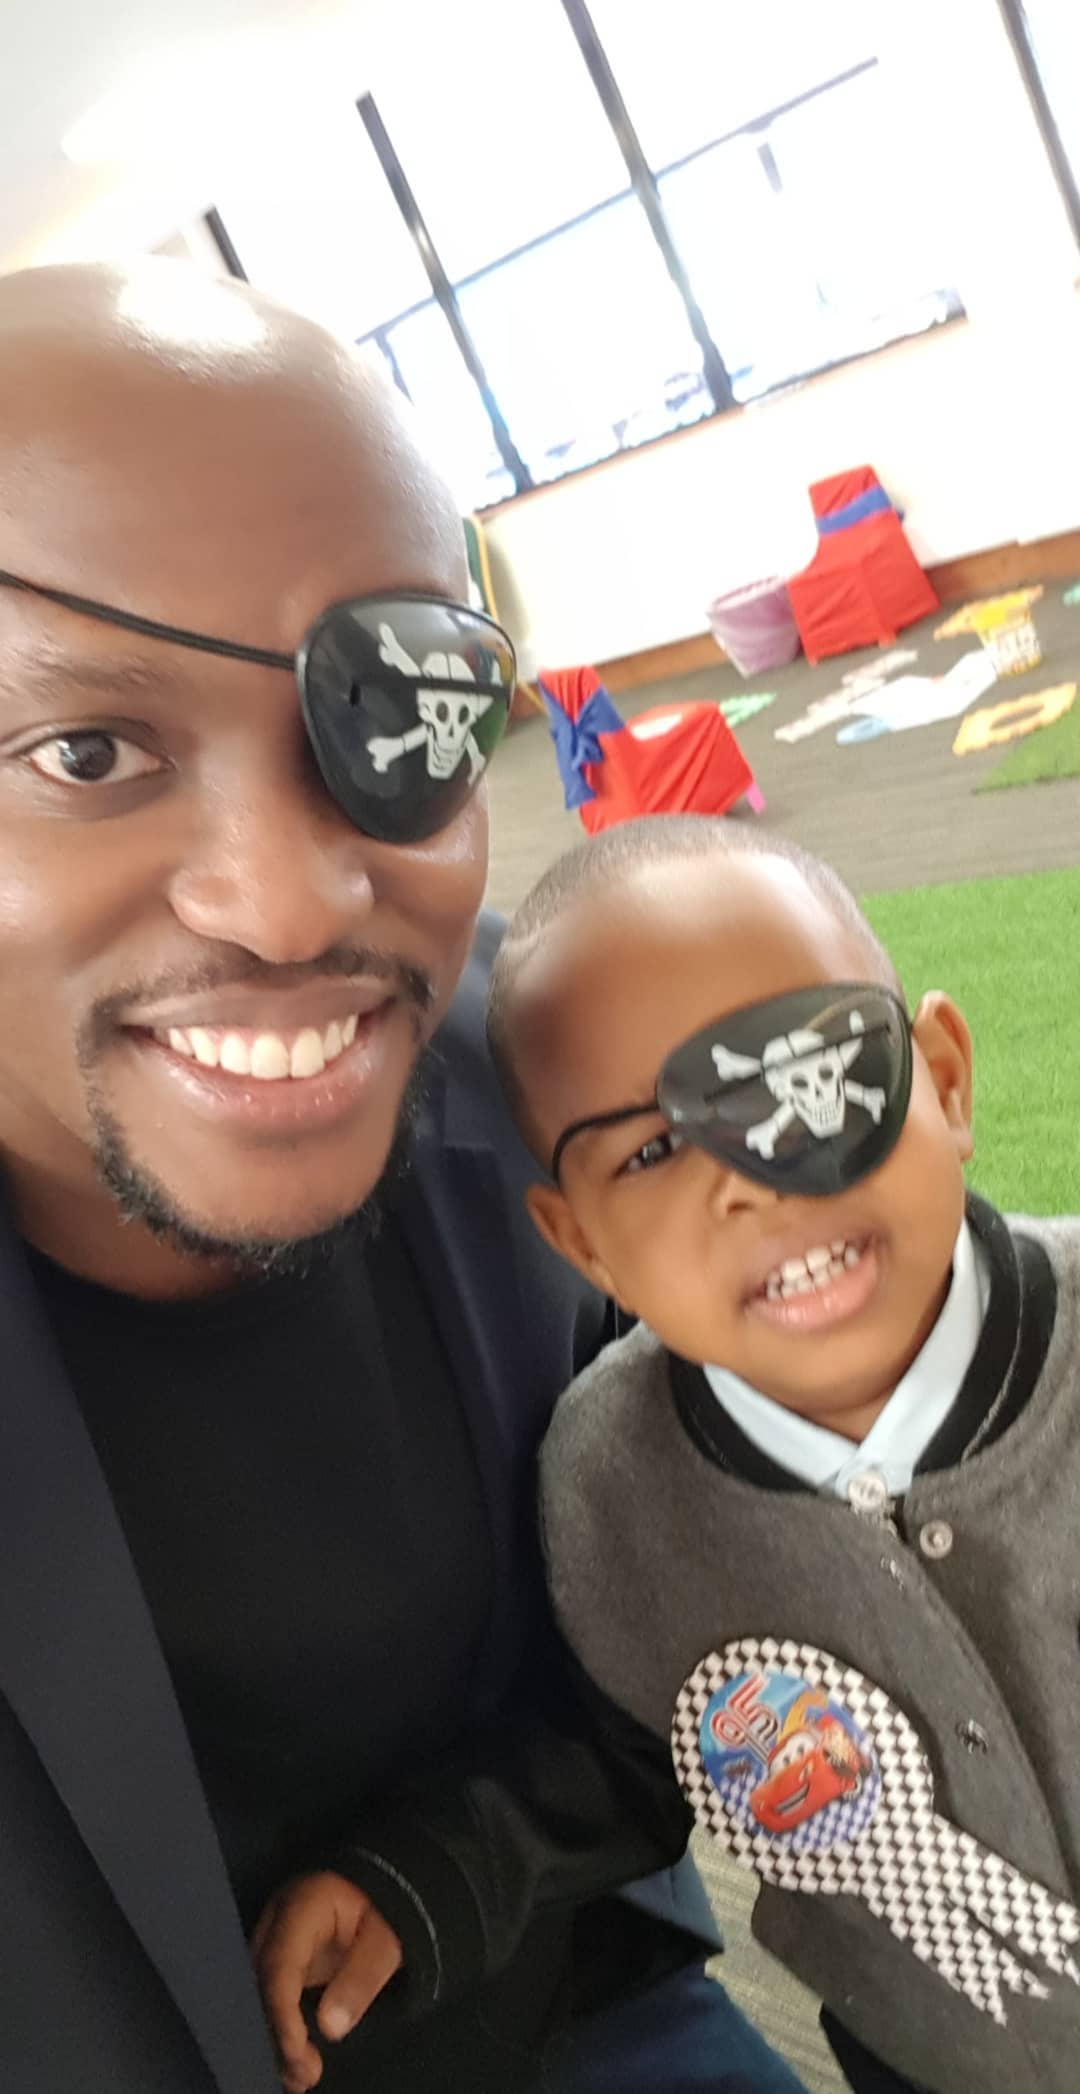 Janet Mbugua's son and his father